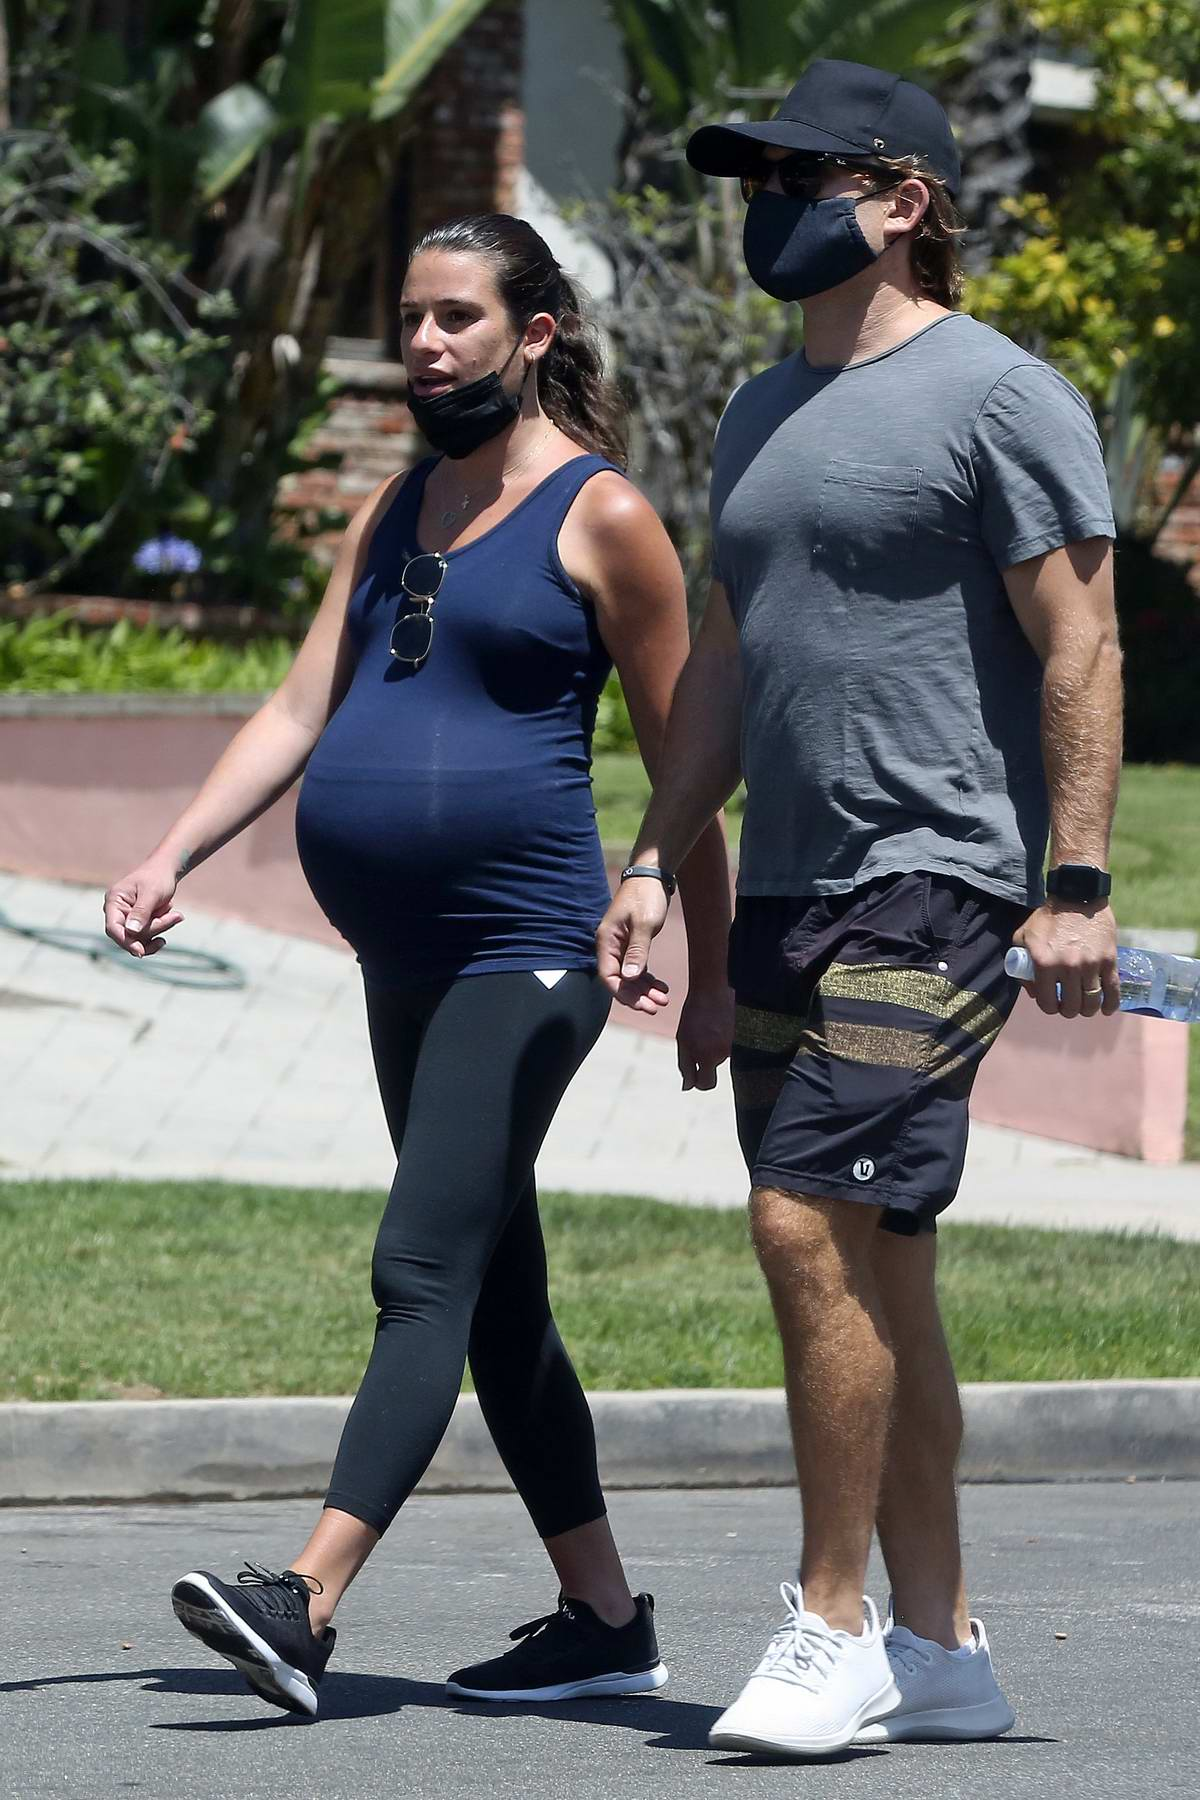 Lea Michele wears tank top and leggings while out for a walk with husband Zandy Reich in Santa Monica, California